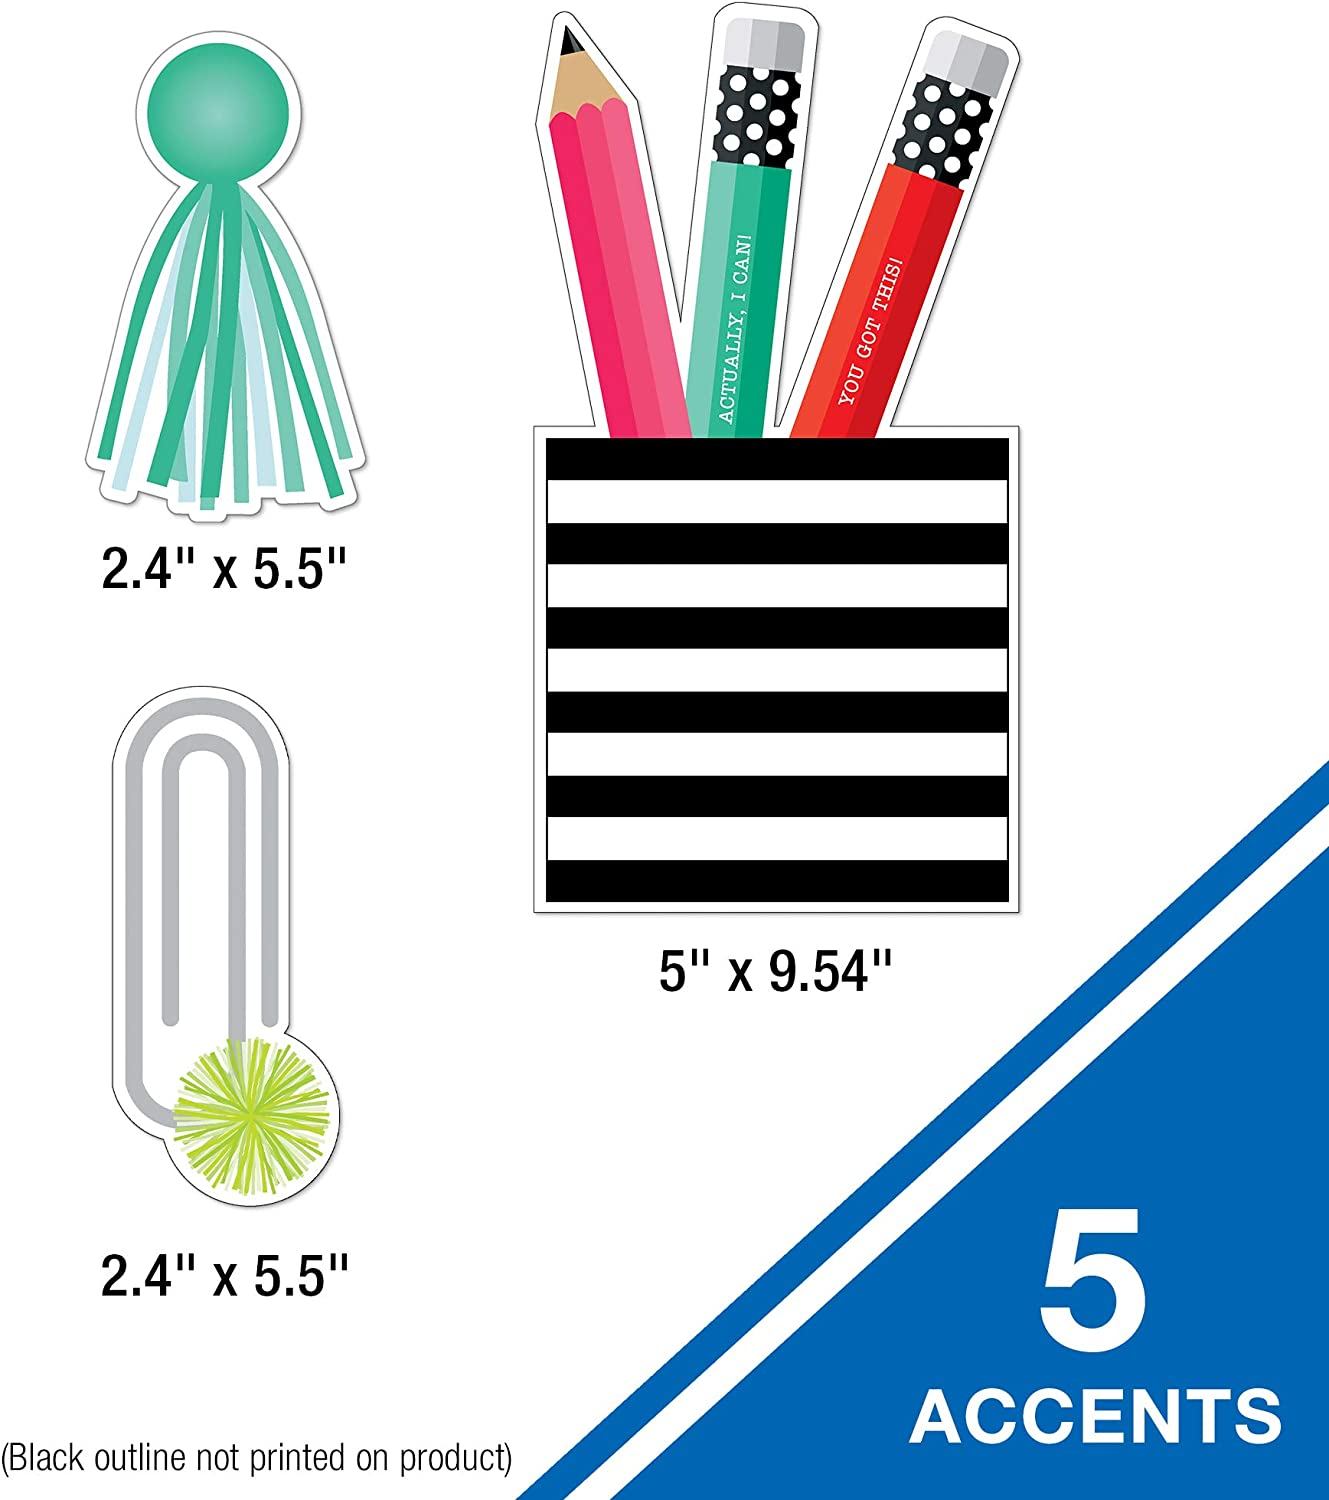 White and Stylish Mini Bulletin Board Set/—Banner Schoolgirl Style Black Pencil Pocket Paper Clips Pencils 17 pc 110492 Tassels Classroom or Homeschool Writing Practice